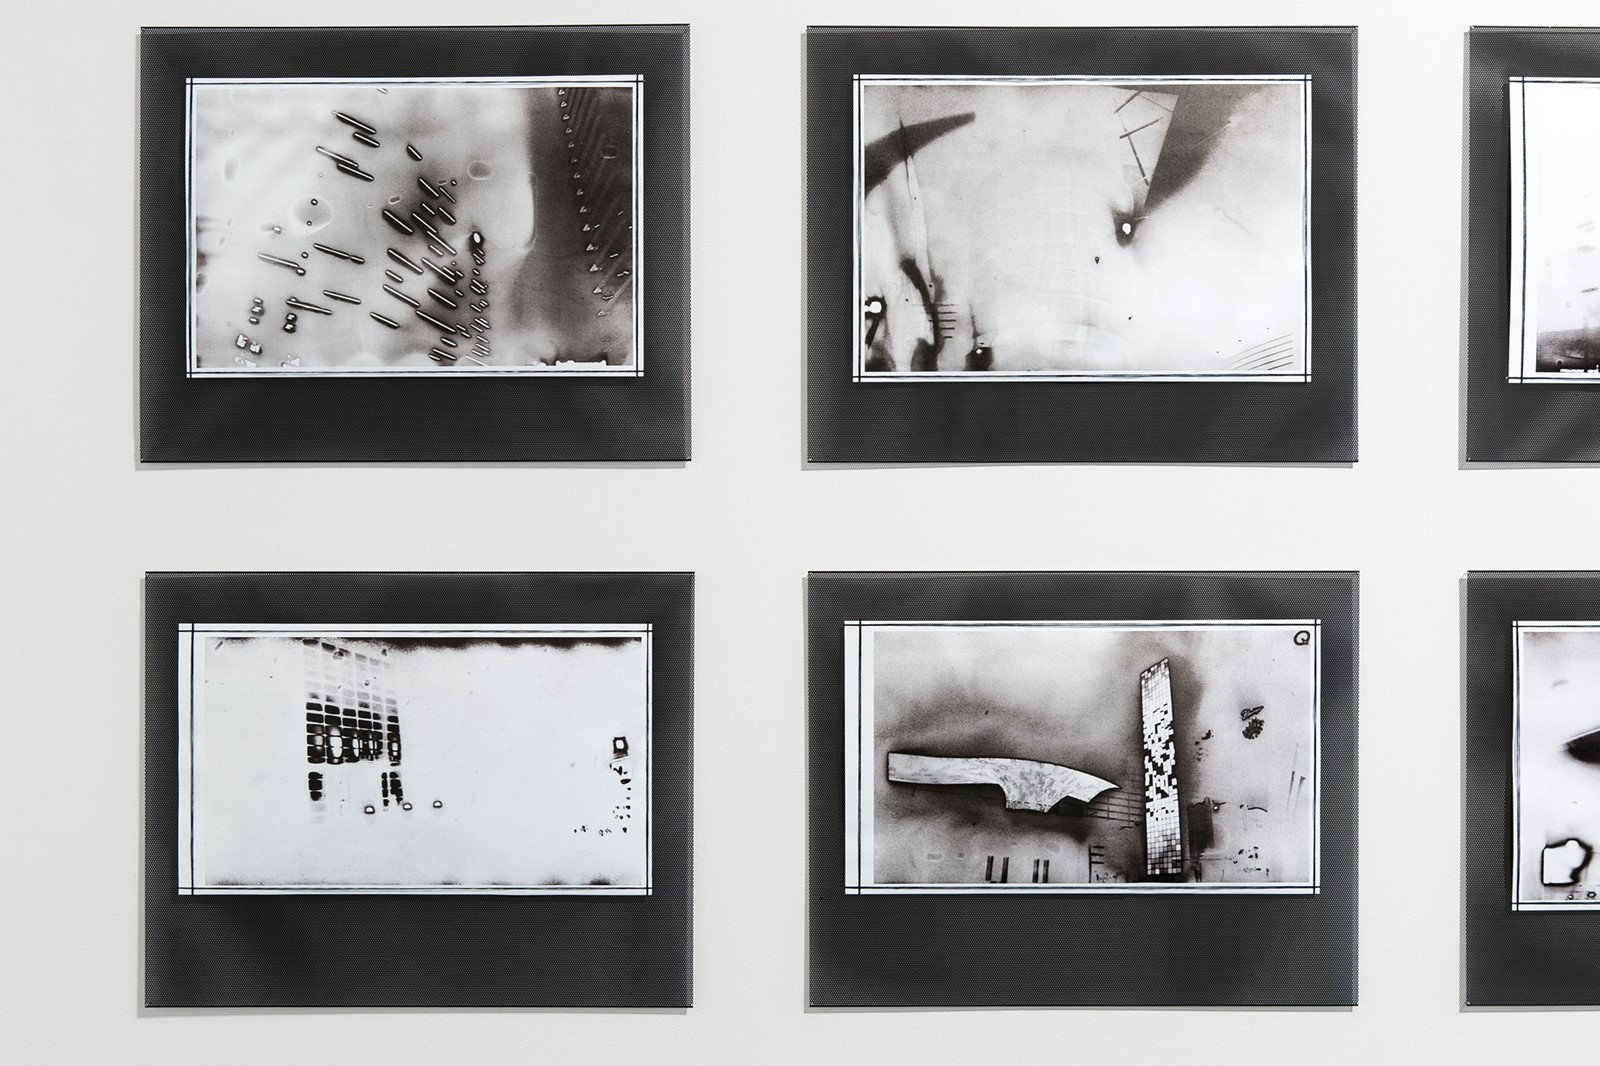 Antony Cairns: Process, installation view